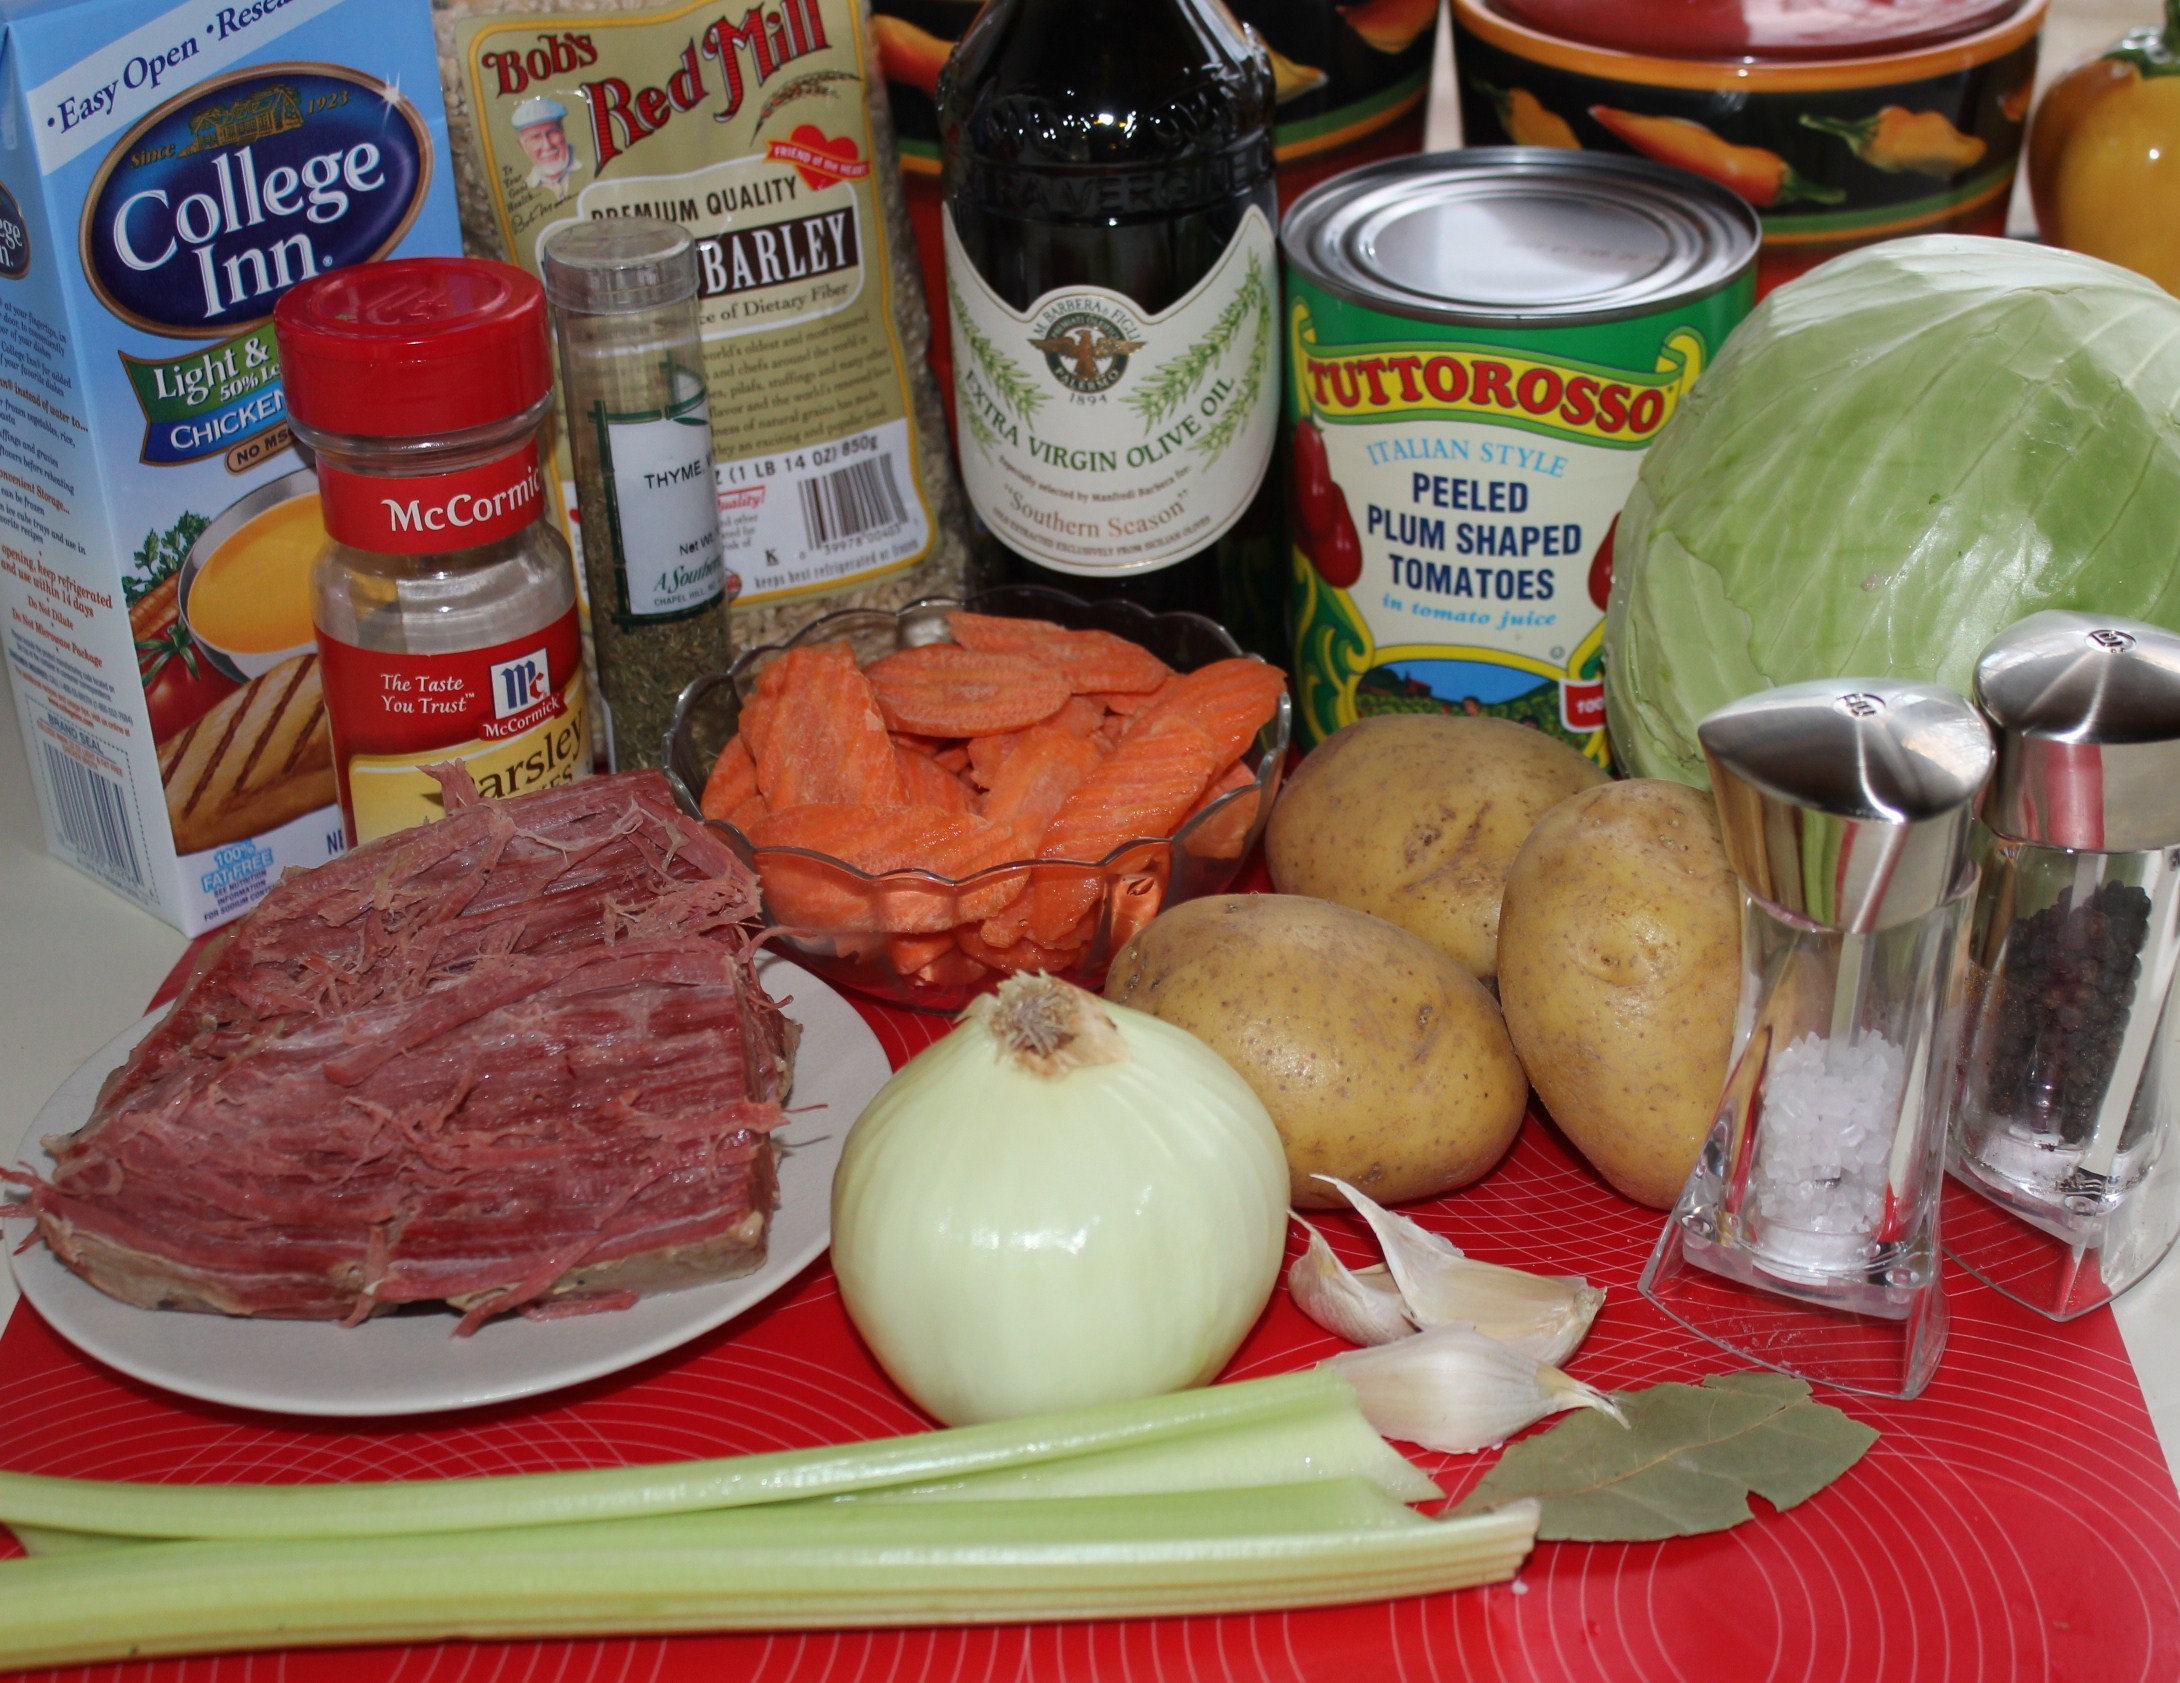 Kel's Corned Beef and Cabbage soup ingredients